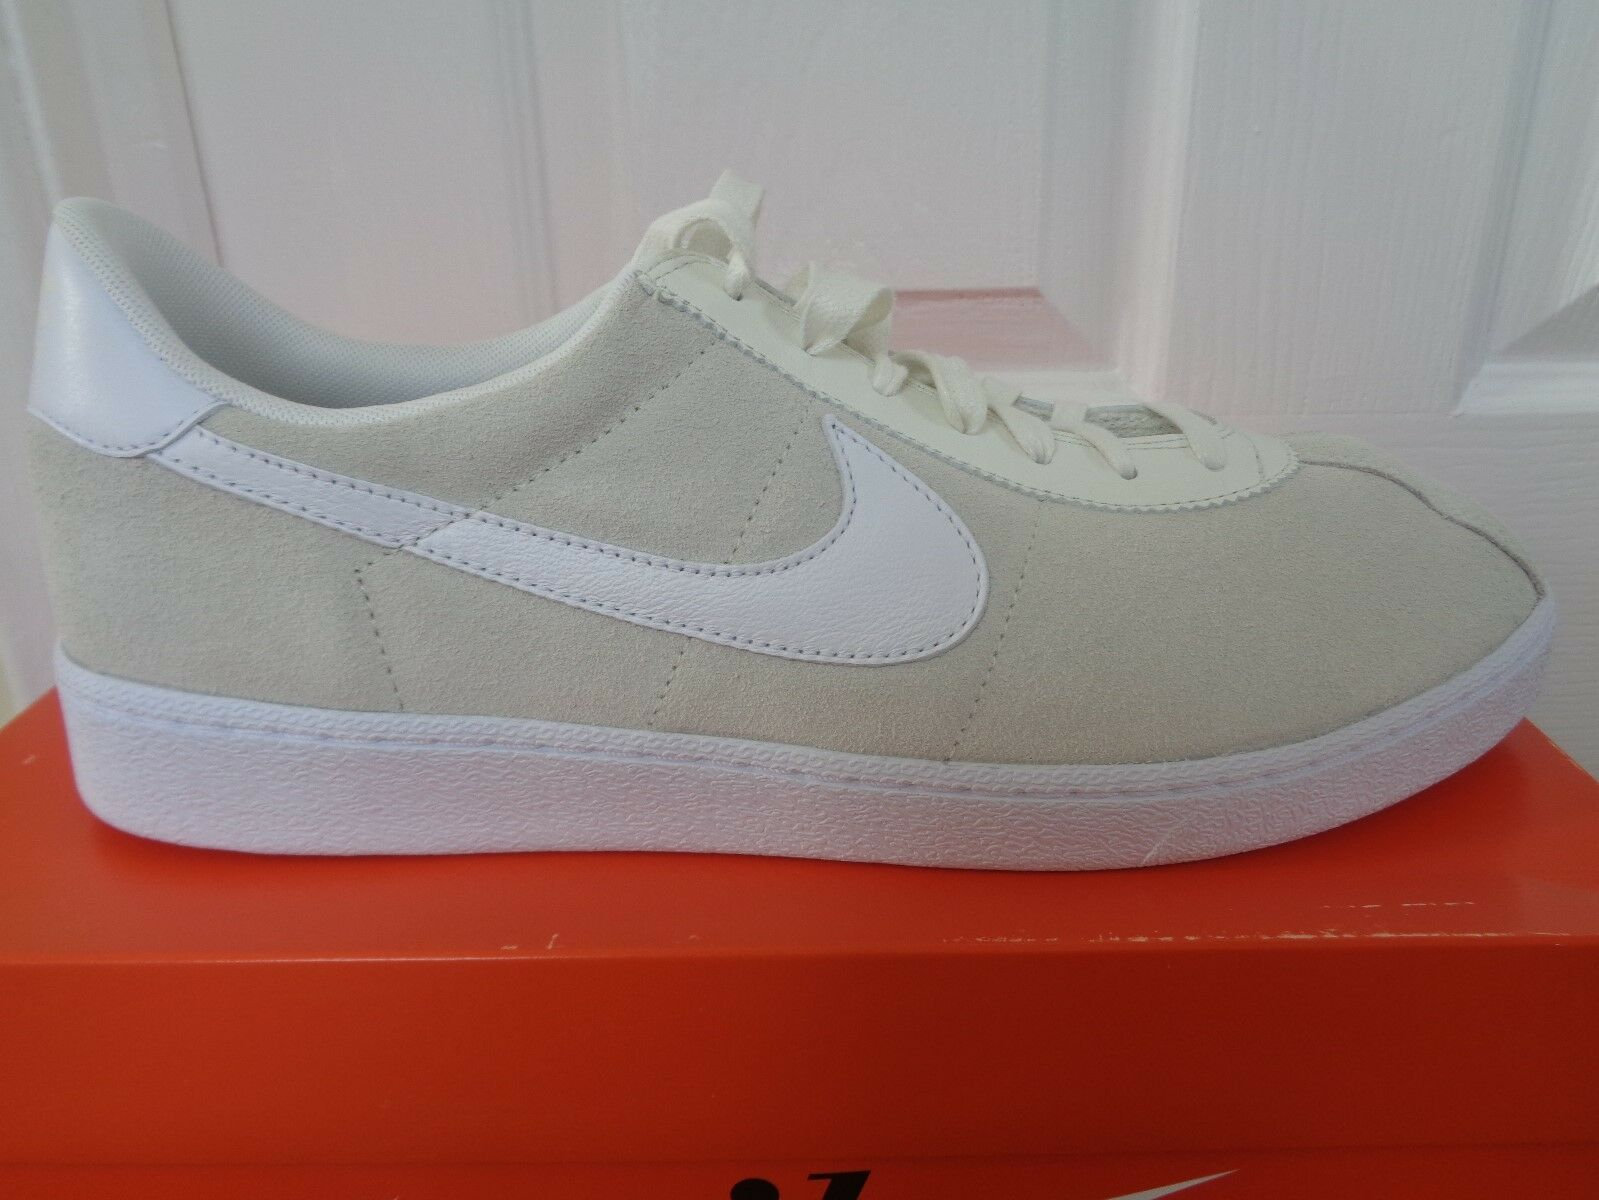 Nike Bruin Baskets Homme Baskets Chaussures 845056 845056 845056 101 US 13 Neuf + Boîte 4ccc8d